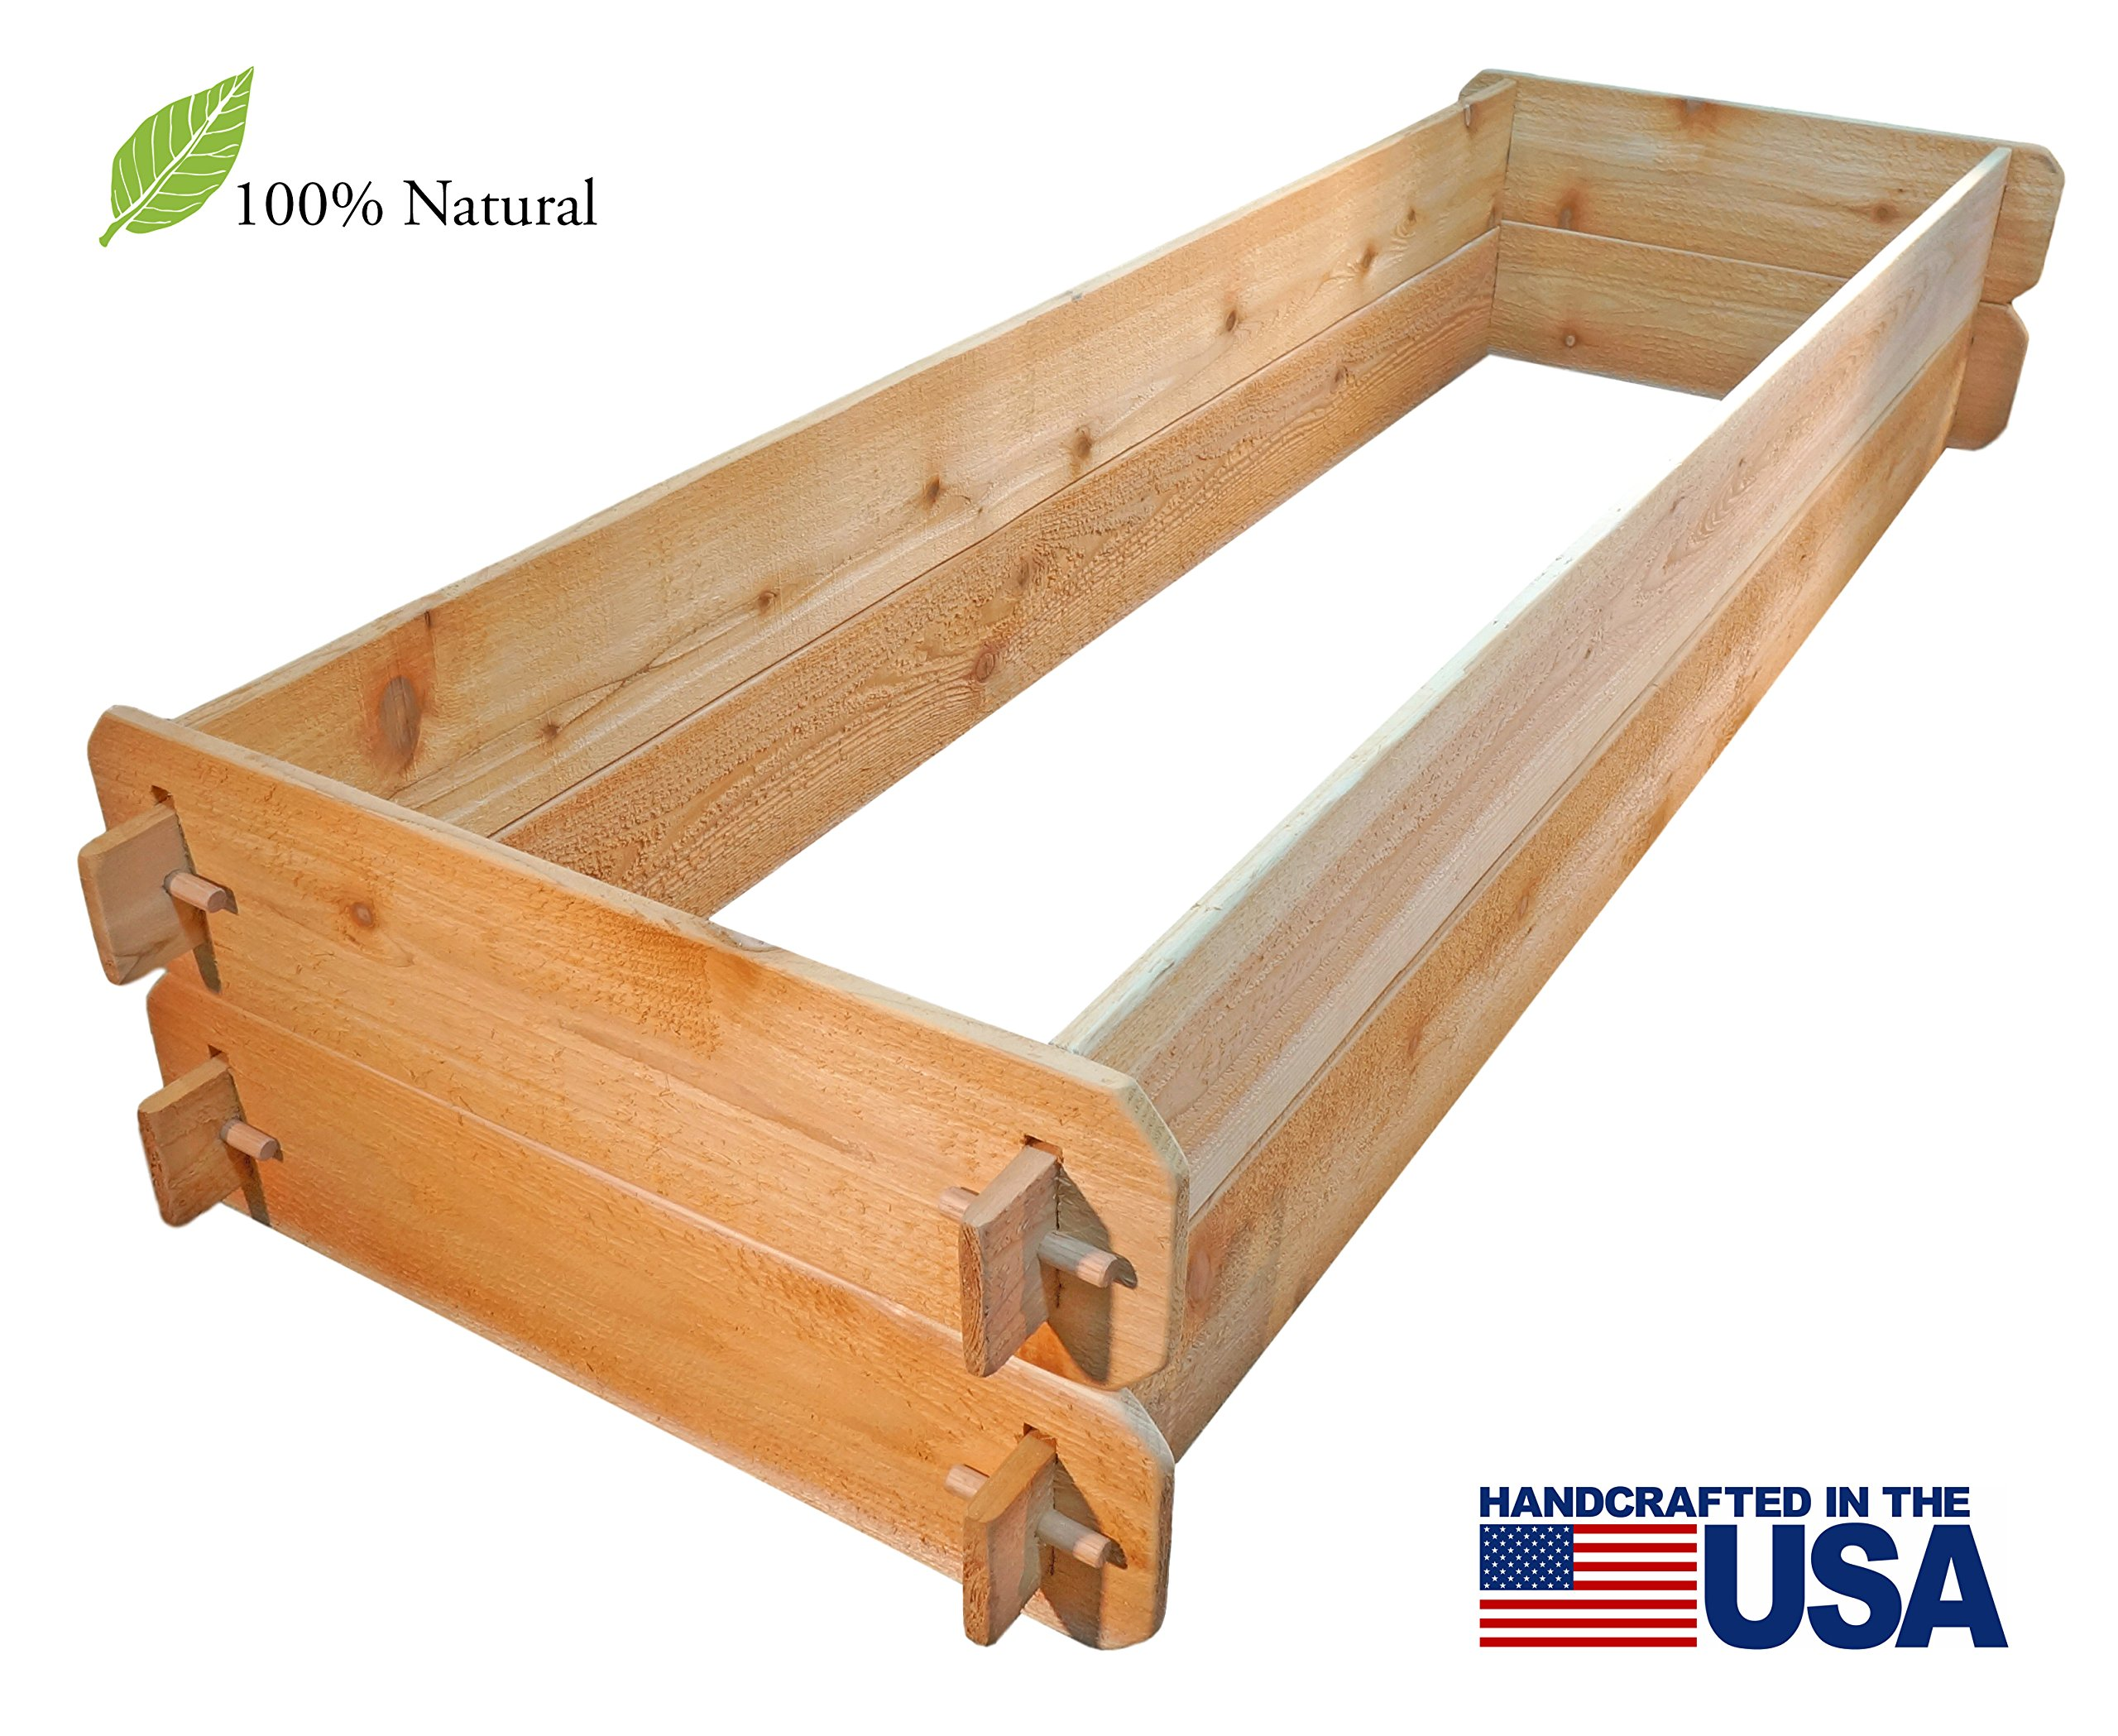 """Timberlane Gardens Raised Bed Kit Double Deep (Two) Western Red Cedar with Mortise and Tenon Joinery, 24"""" W x 72"""" L 5 <p>Raised garden bed kit dimensions: 2 feet wide x 6 feet long (6 inches deep) and 2 feet wide x 6 feet long (6 inches deep). Depth is 12 inches when stacked. 5/8"""" thick. Inner (planting) dimensions are a bit smaller due to the mortise & tenon joints. Raised Garden Bed Kit Proudly Made in Homer Glen, Illinois USA. Constructed of Select Western Red Cedar. Aromatic and Naturally Insect & Rot Resistant. Handcrafted Mortise & Tenon Joinery. The Strongest Corner Joints Available. Easy to Assemble in Seconds, No Tools Required. Perfect for a Children's Garden. Splinter Free. 100% Natural and Chemical Free. Safe for Vegetables and Best for Organic Gardening.</p>"""